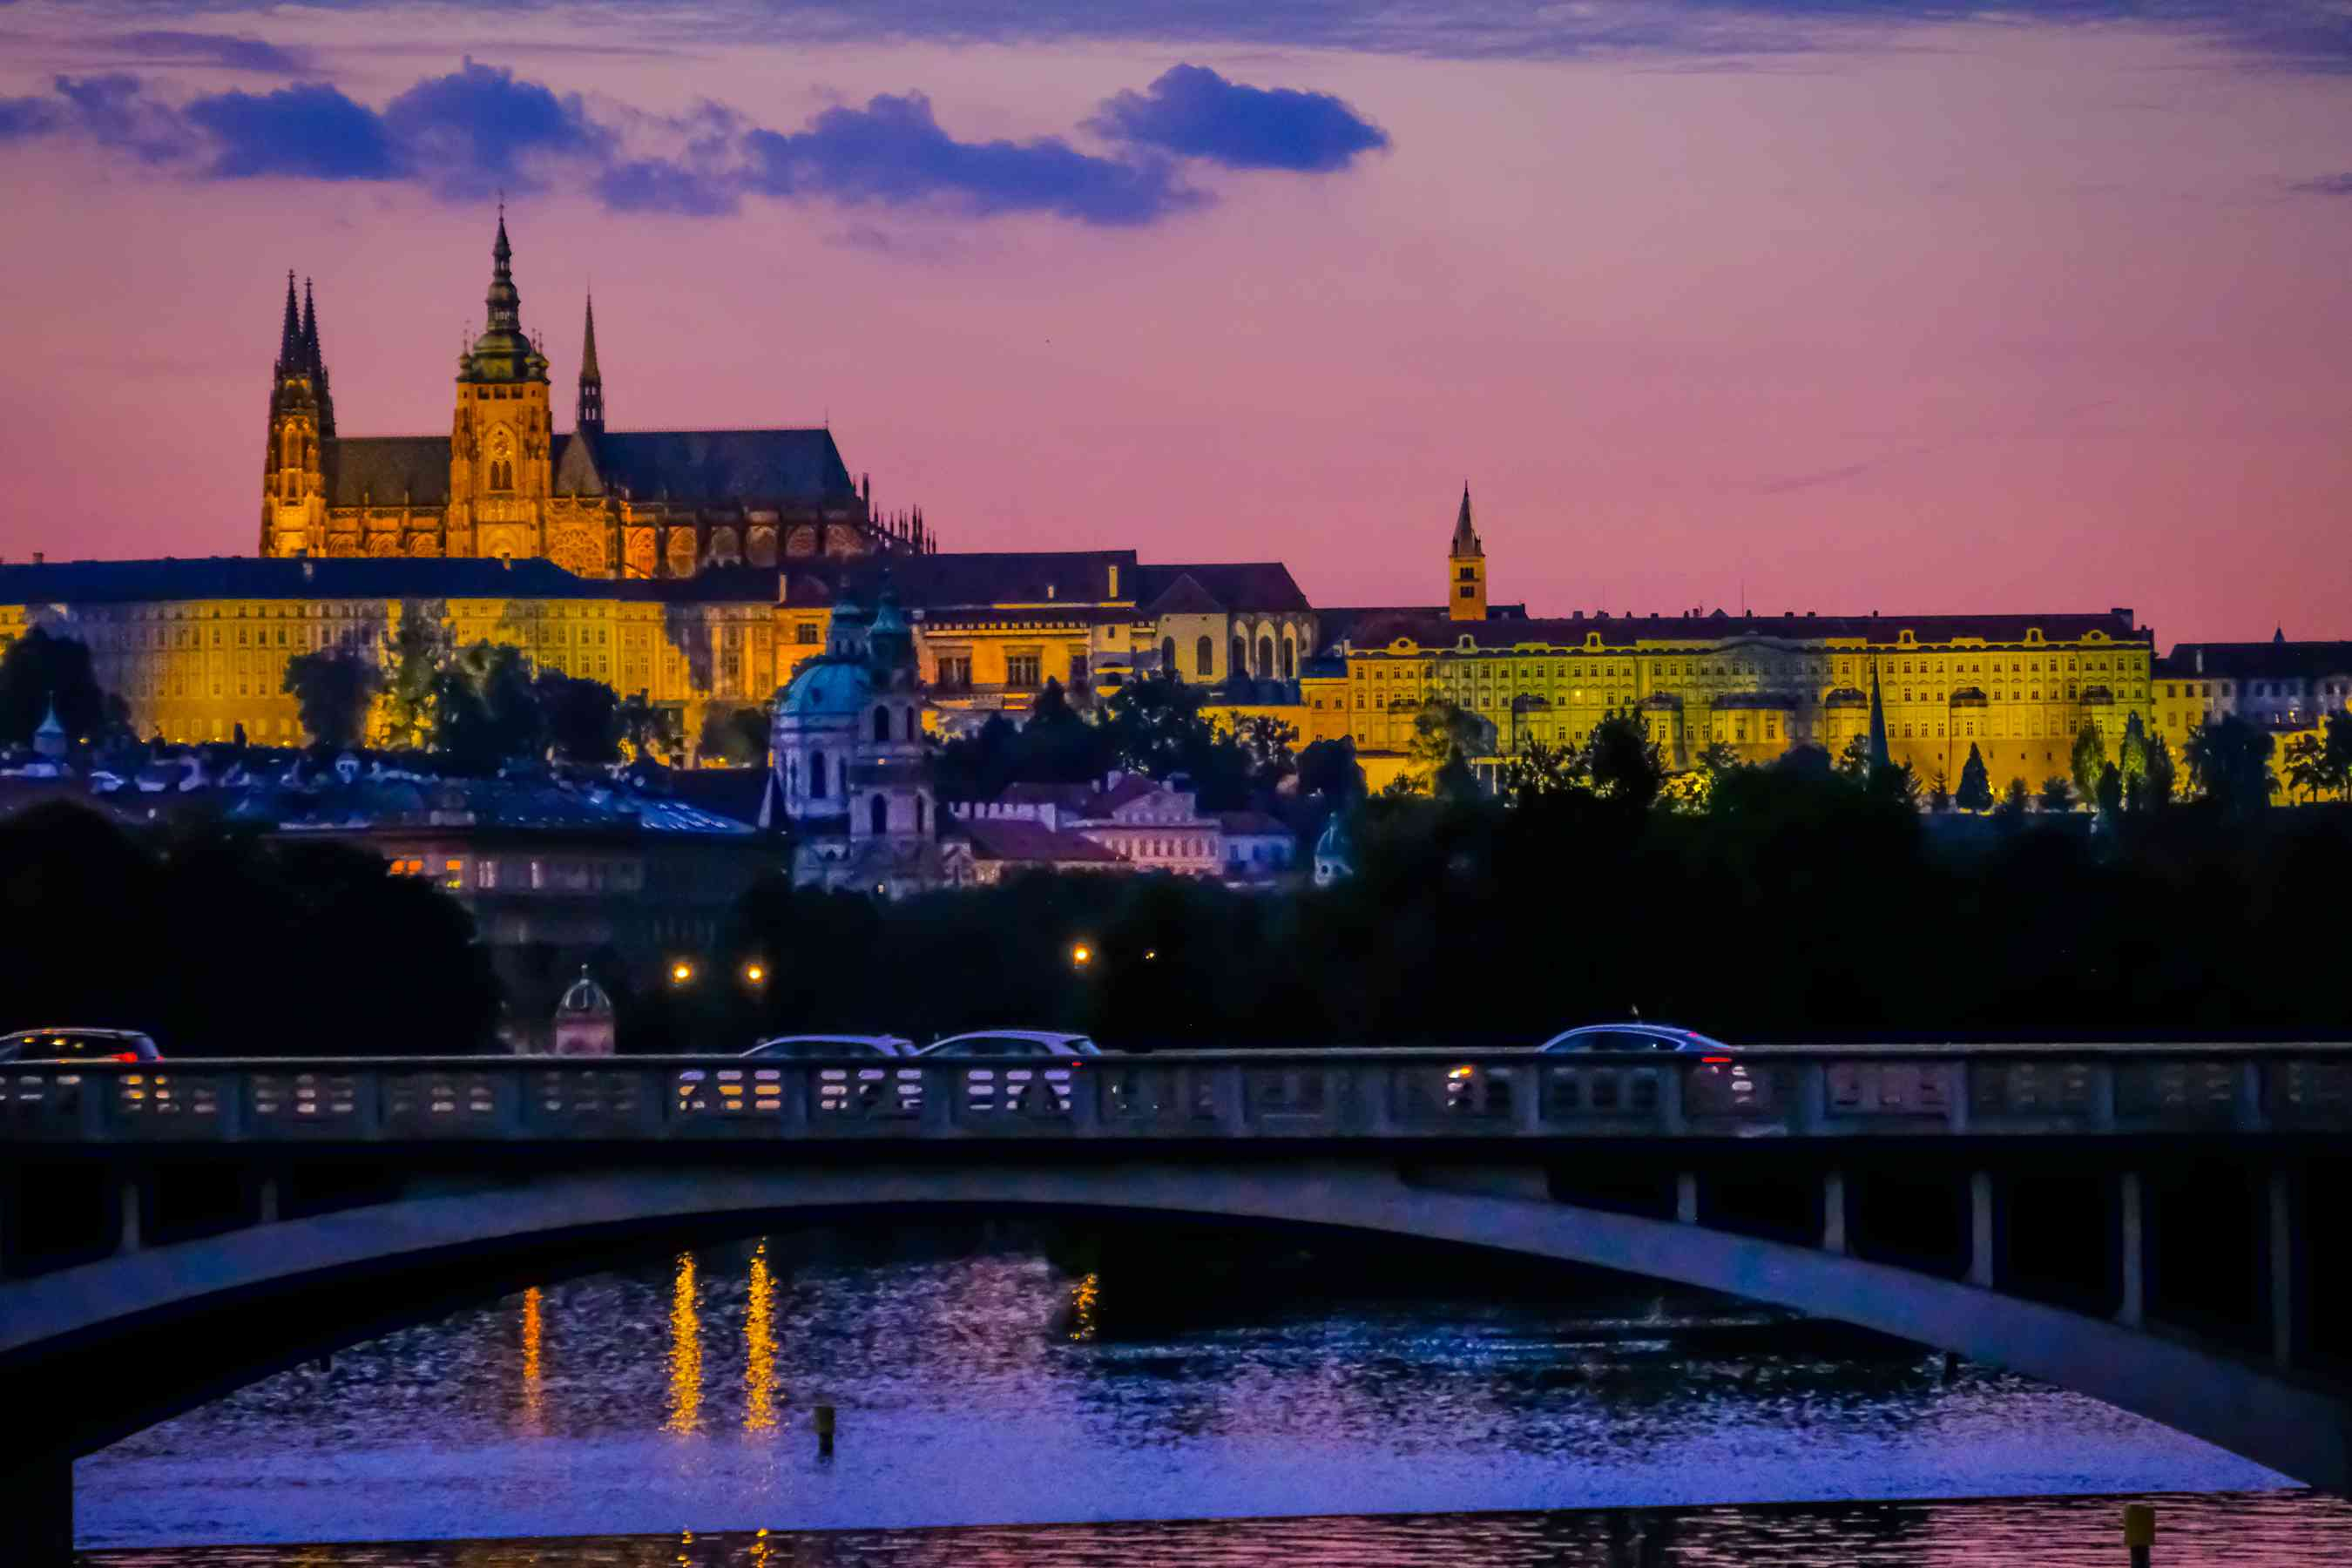 View of Prague at night with view of the Prague Castle lit up